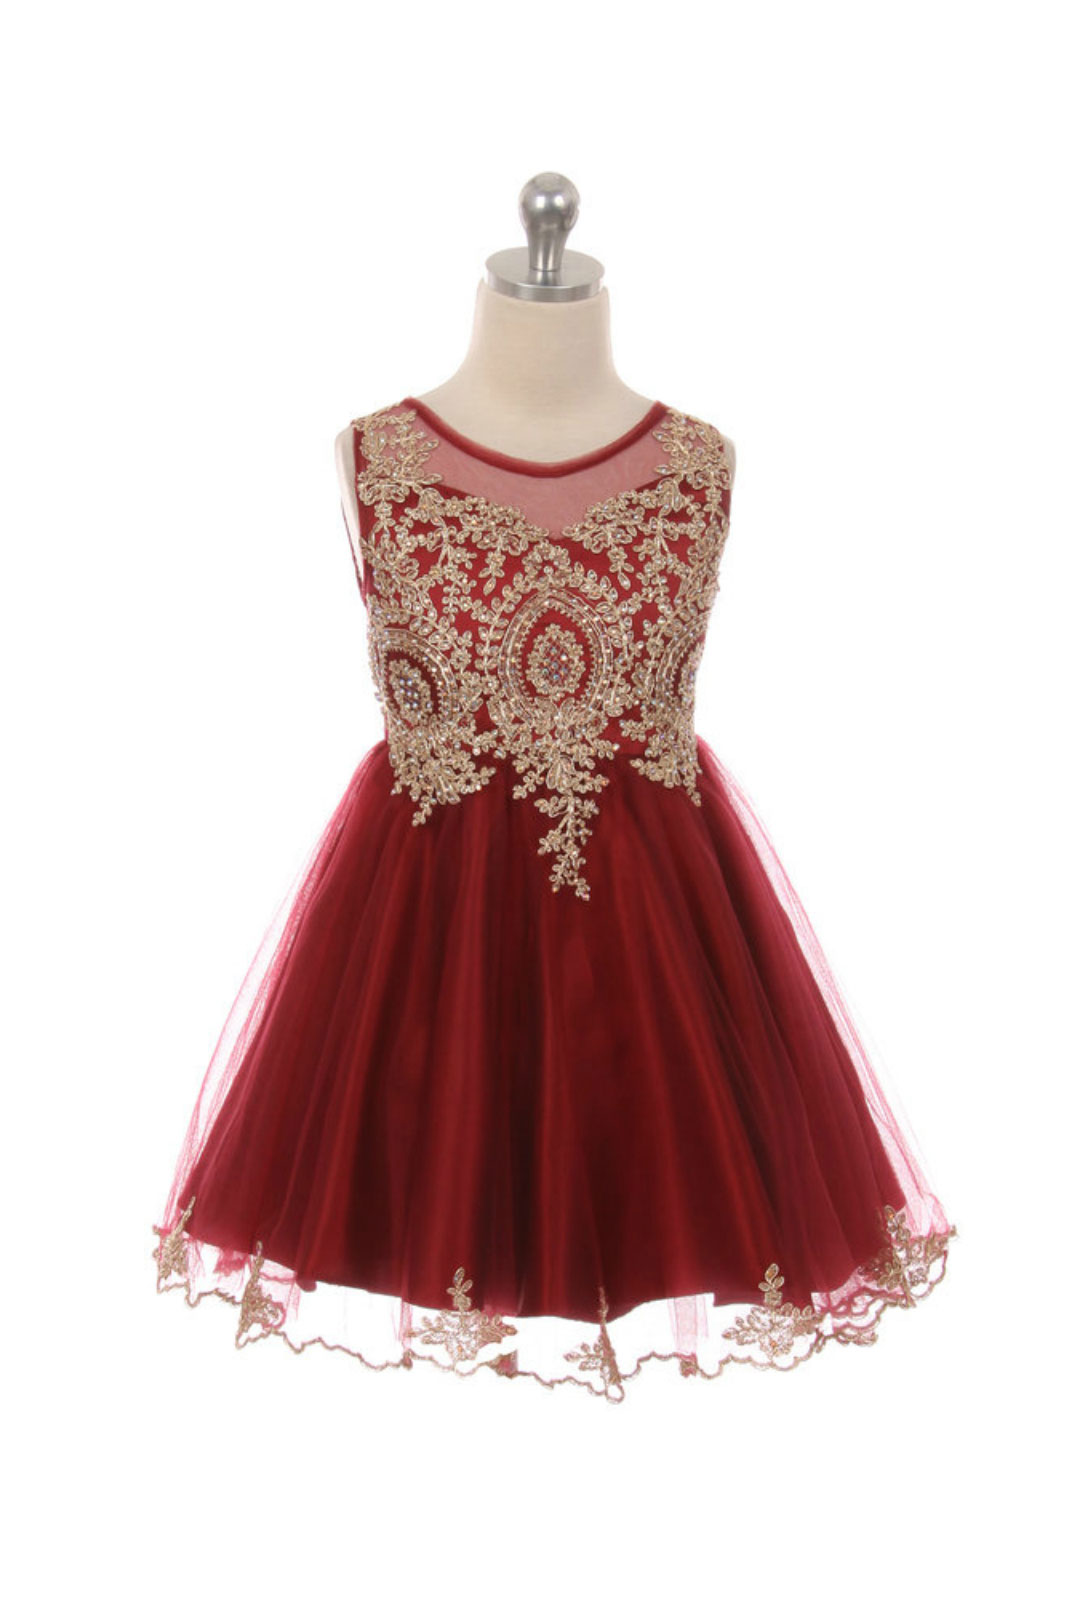 MB_1049BUR - Girls Dress Style 1049 - BURGUNDY with Gold Accents ...